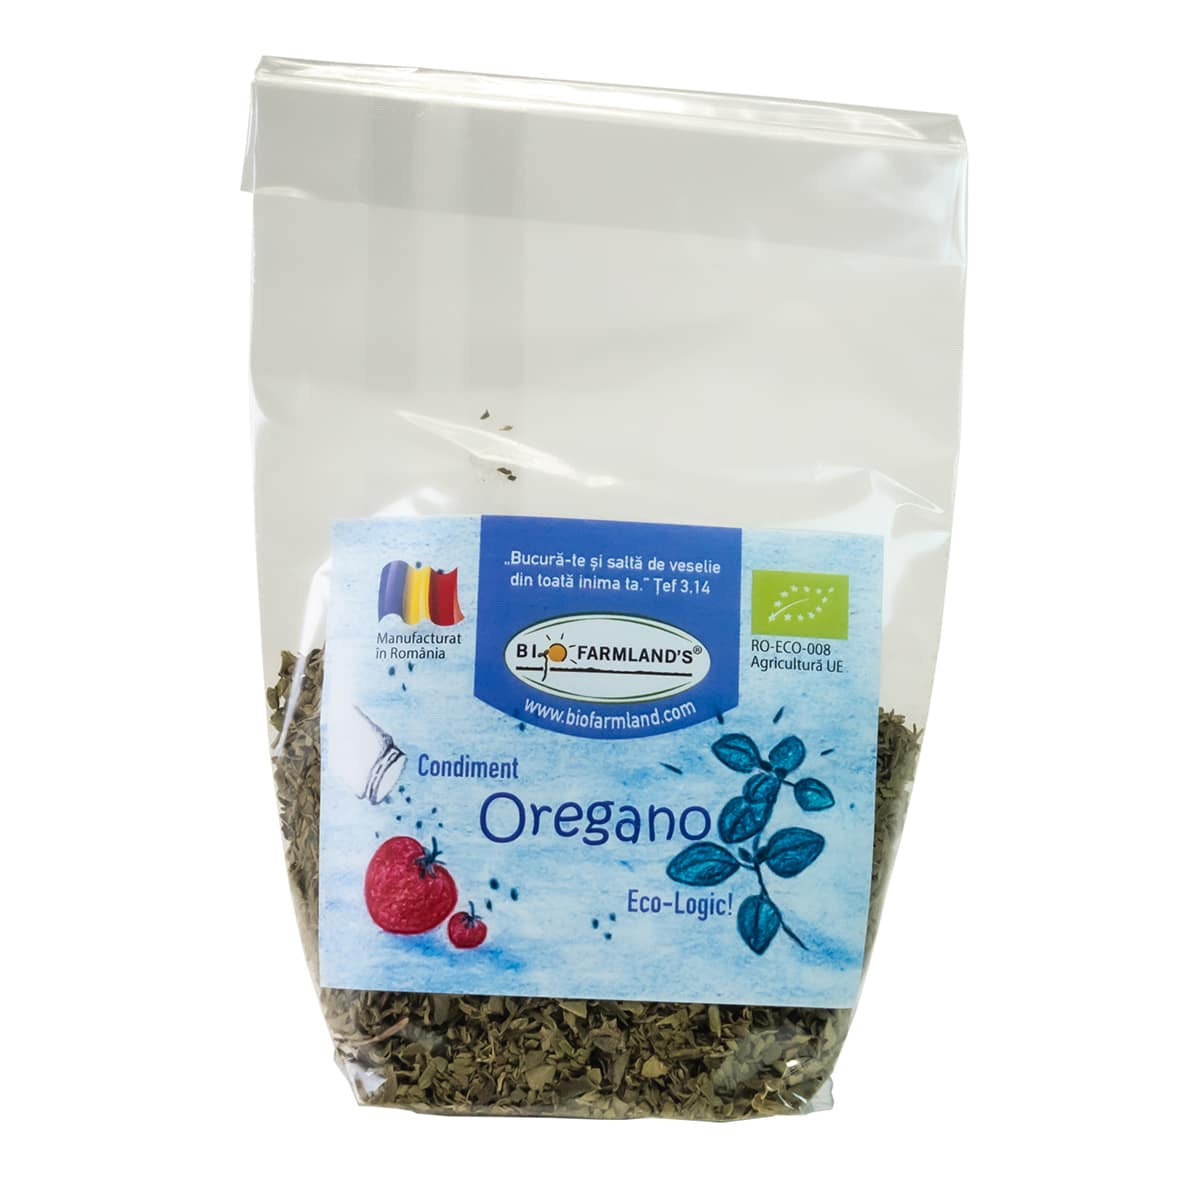 Condiment Oregano - refill